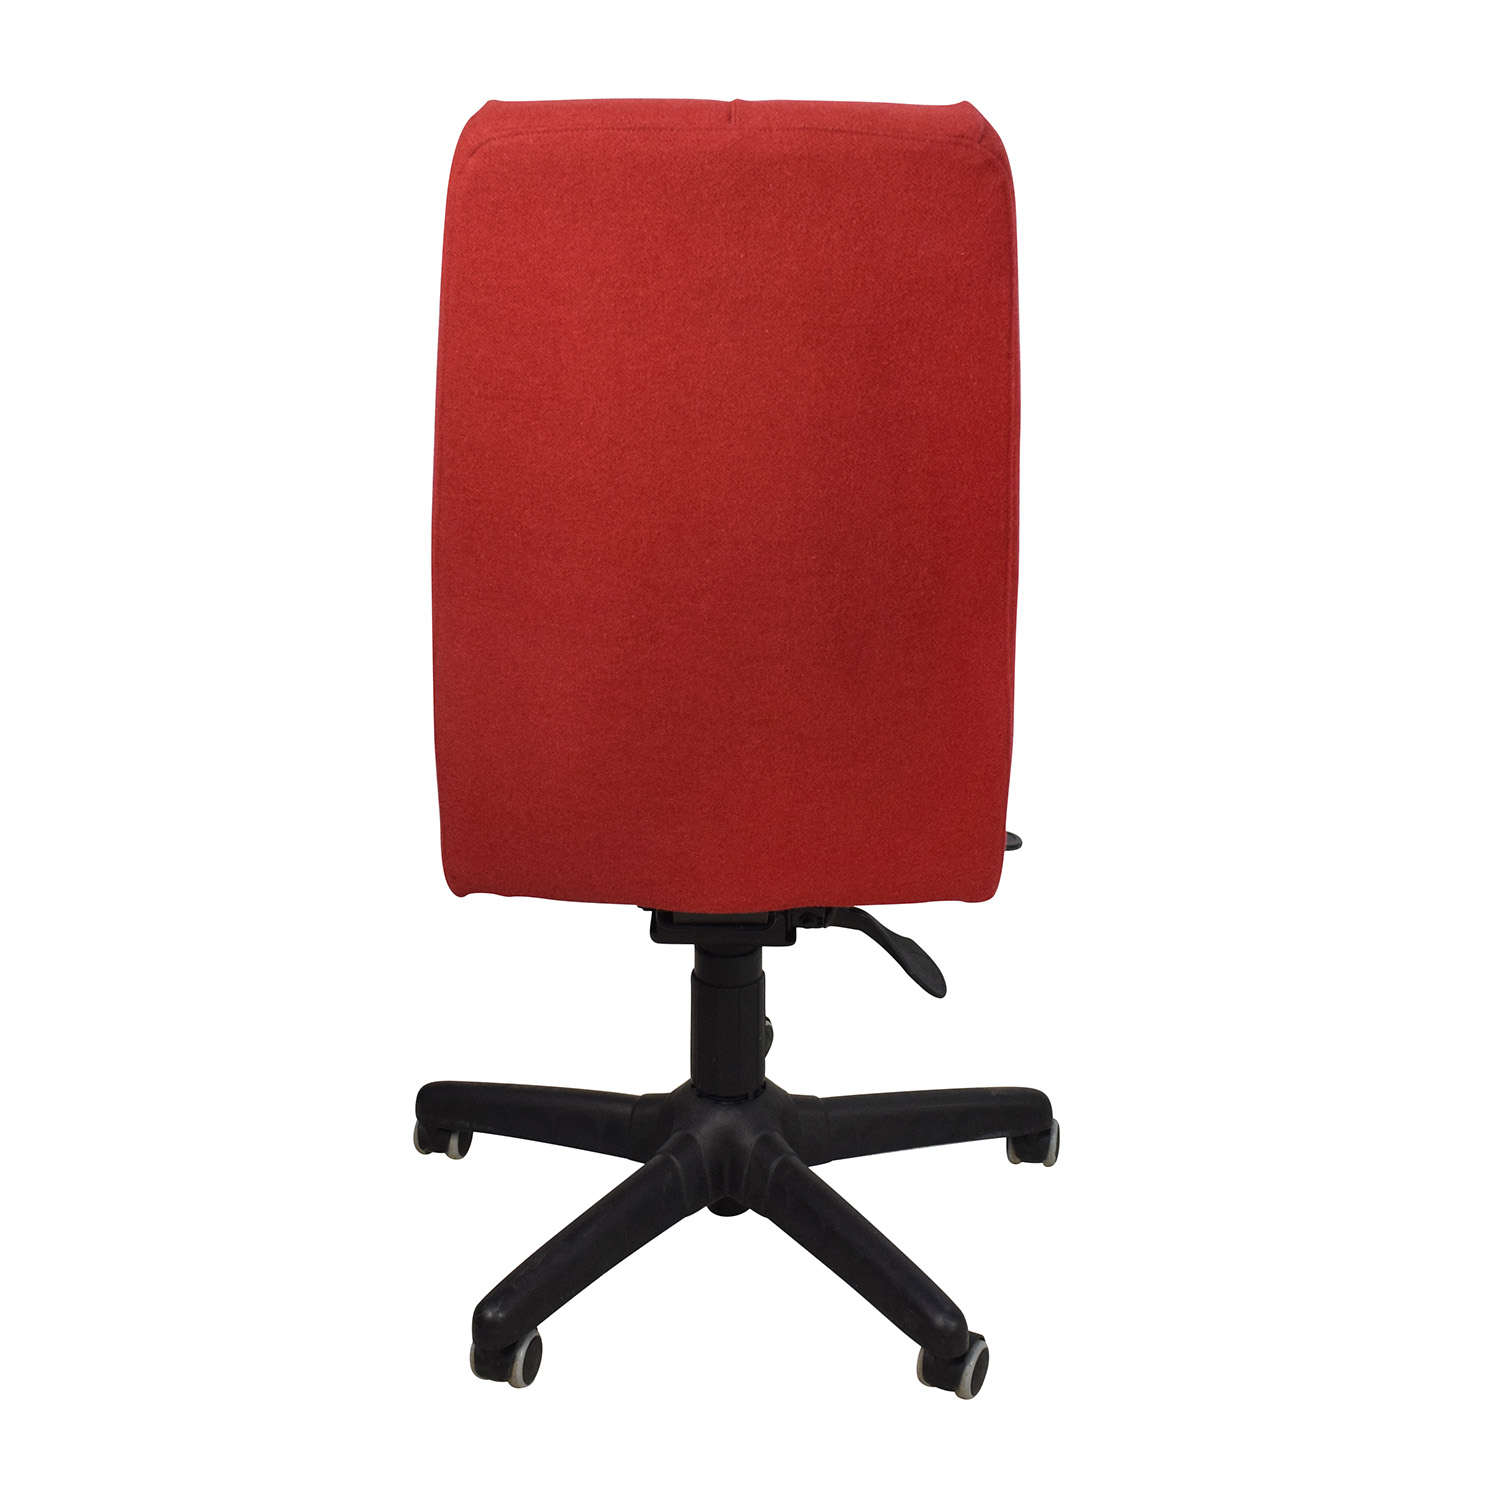 cheap hand chair neutral posture instructions 90 off red armless adjustable home office chairs